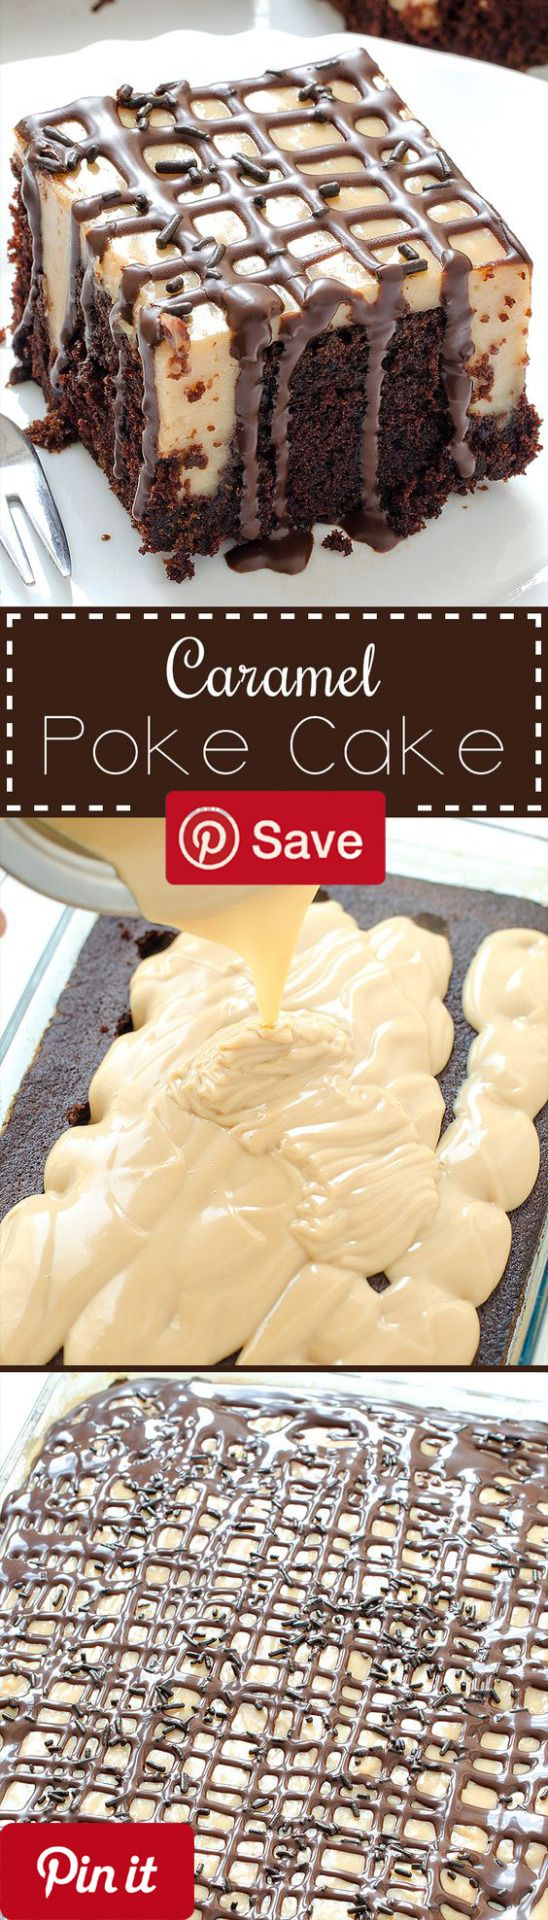 Caramel Poke Cake - Caramel Poke Cake you will love this cake! Perfect combination of caramel and chocolate! Caramel Poke Cake the best cake Ive ever made! So delicious and moist! - Ingredients Vegetarian Refrigerated 2 Eggs Condiments 1 Caramel sauce 1 Chocolate sauce Baking & Spices 1 tsp Baking powder 1 tsp Baking soda cup Cocoa powder unsweetened 1 cups Flour 2 cups Granulated sugar 1 Pinch Salt 1 tsp Vanilla extract Oils & Vinegars cup Vegetable oil Drinks 1 cup...